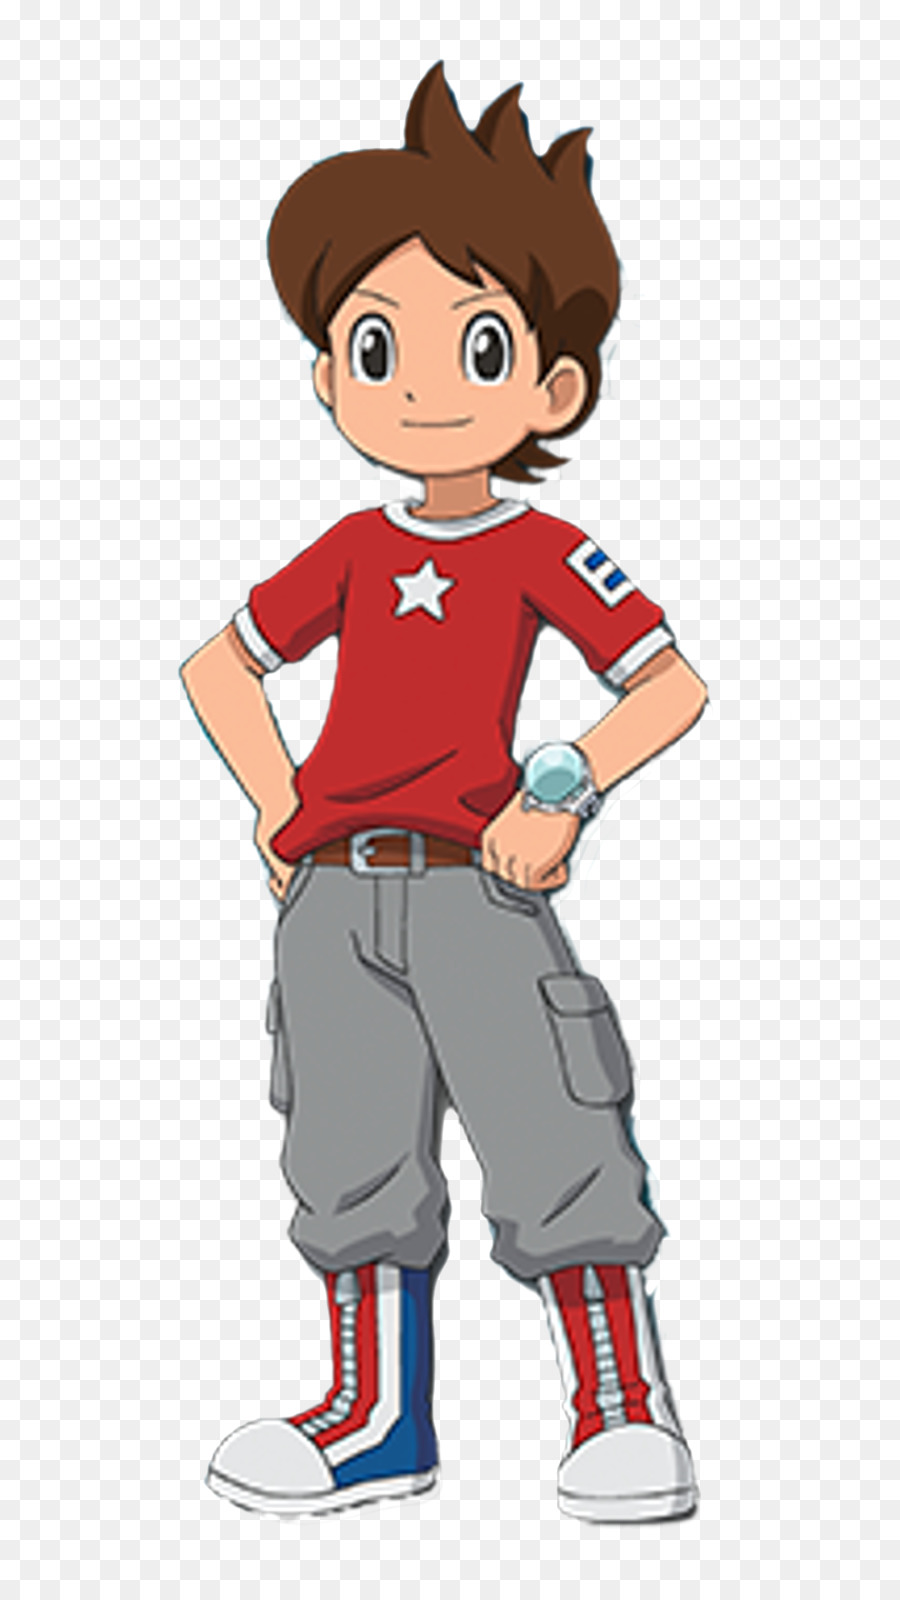 Yo kai watch clipart picture freeuse download Cartoon Football clipart - Red, Clothing, Man, transparent ... picture freeuse download